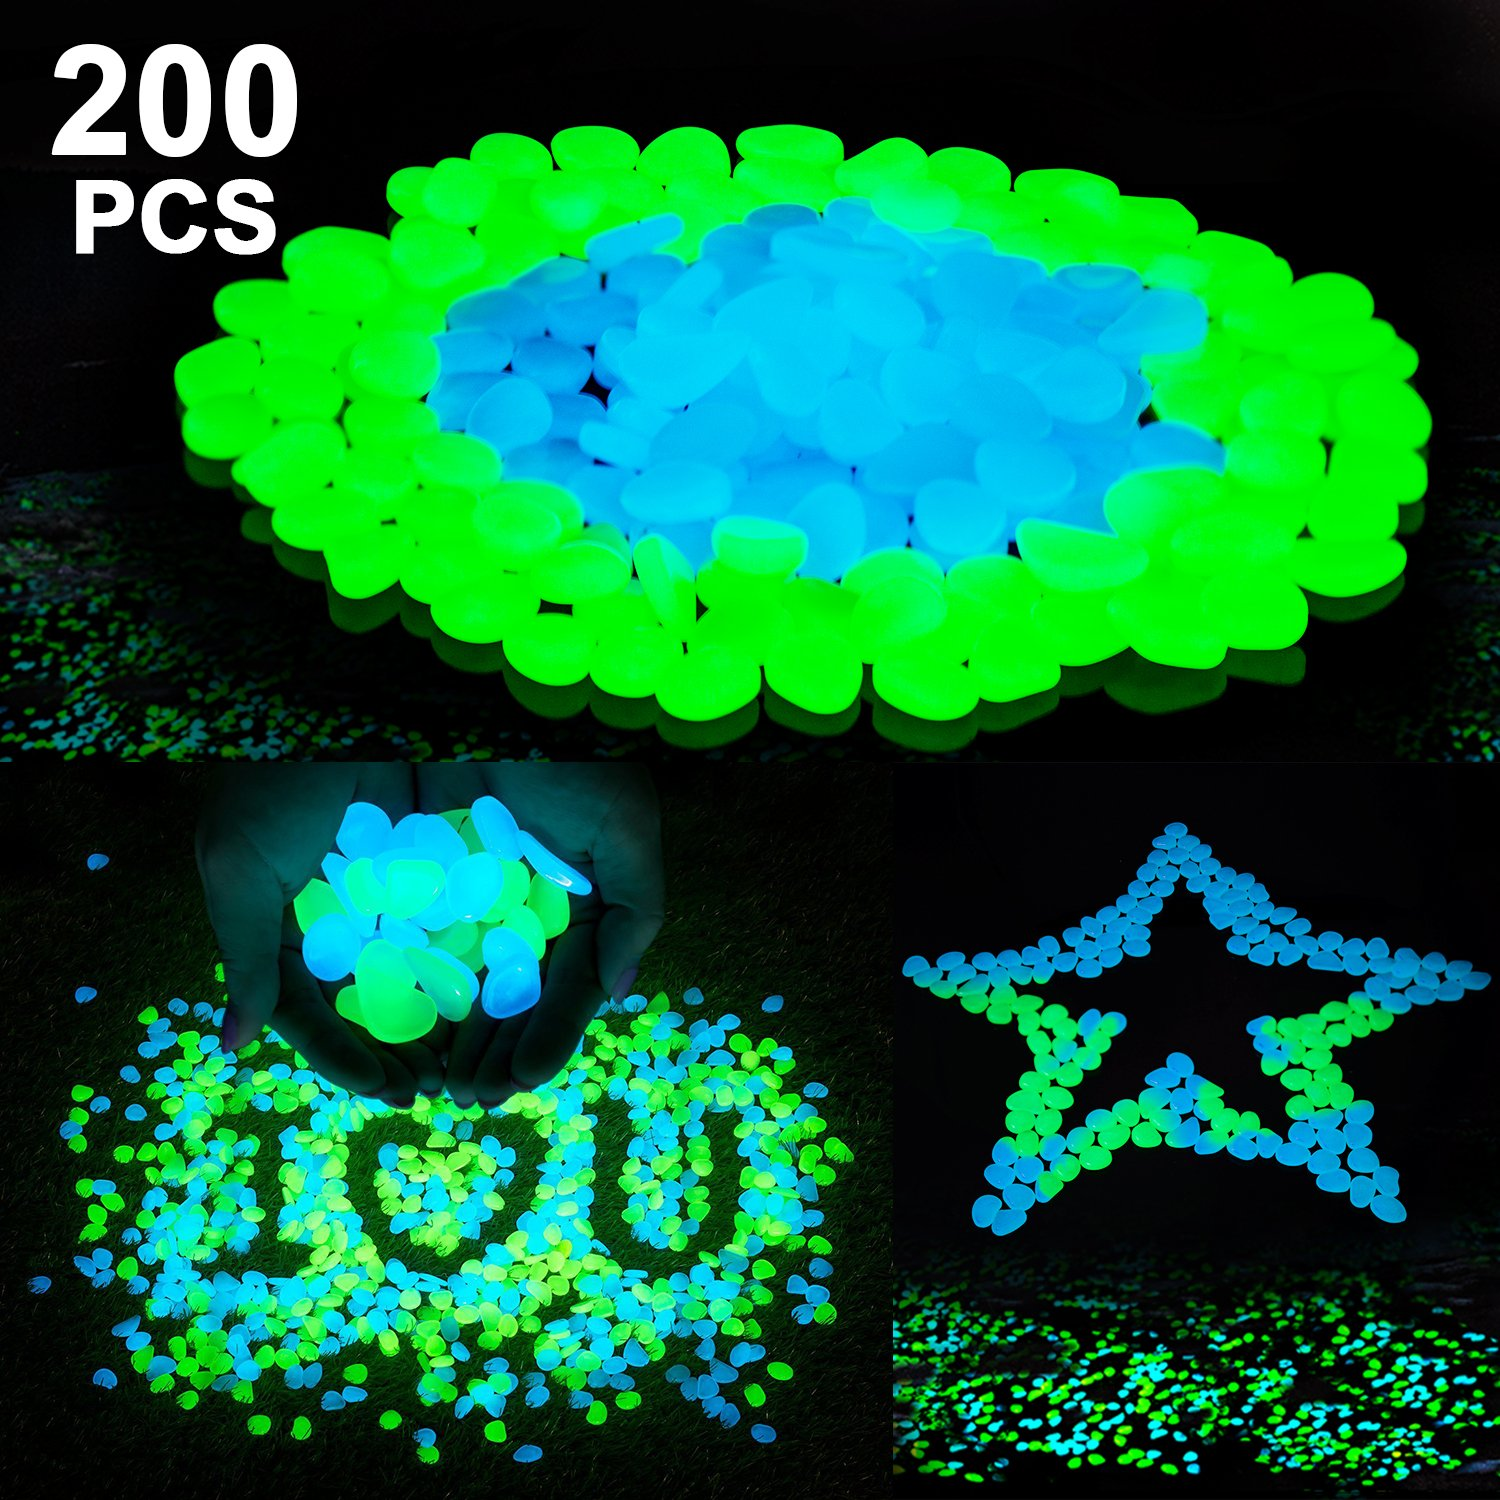 Cynkie 200Pack Glow in the Dark Garden Pebbles for Walkways Outdoor Decor Aquarium Fish Tank Path Lawn Yard, Glow Stone Rocks Outdoor Garden Decorative Stones in Blue & Green